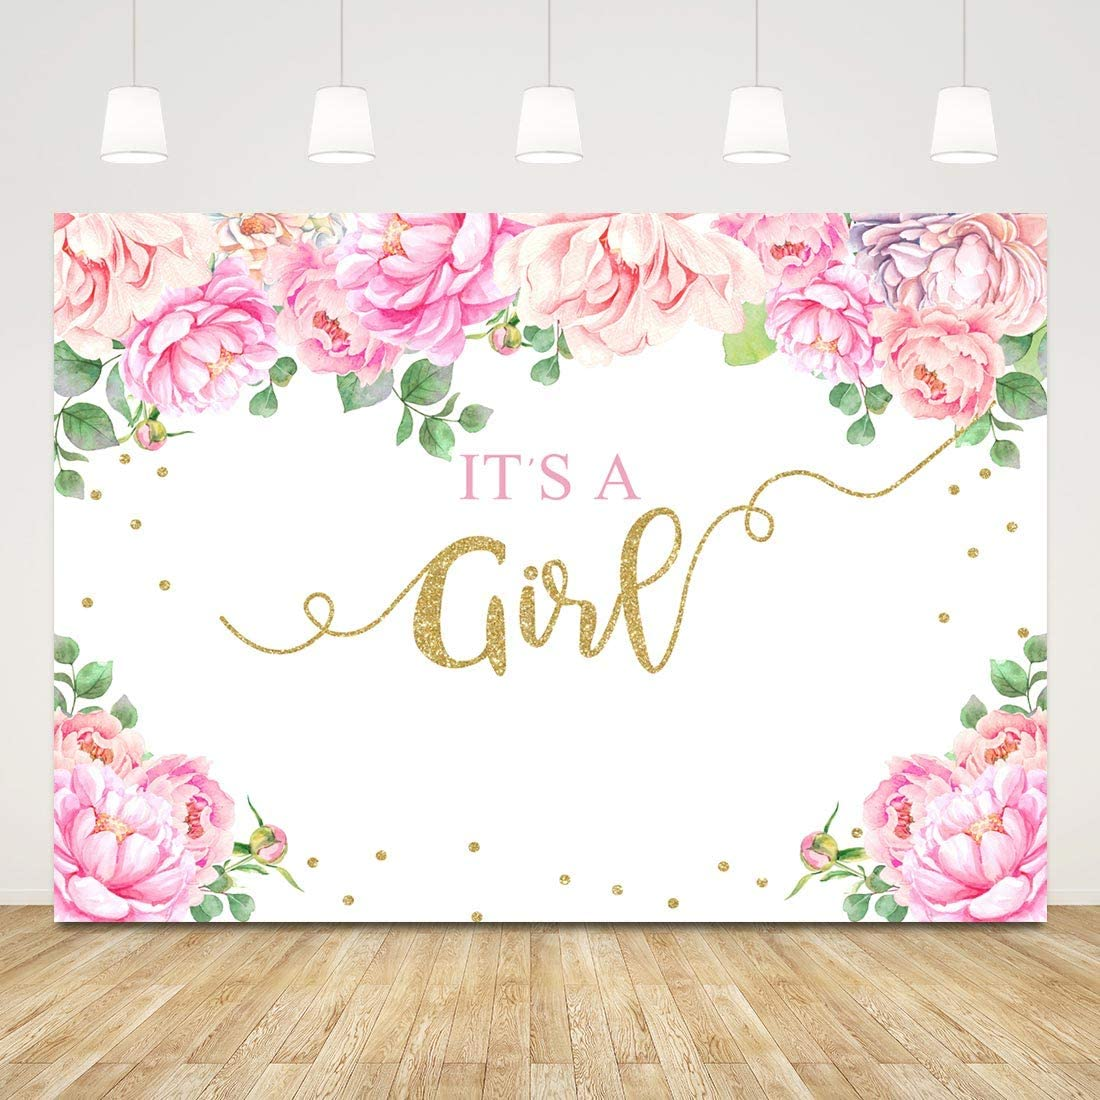 8x12 FT Heels and Dresses Vinyl Photography Backdrop,Spring Inspired Floral Abstract Backdrop Pink Dress Shoes Bracelet Background for Baby Shower Bridal Wedding Studio Photography Pictures